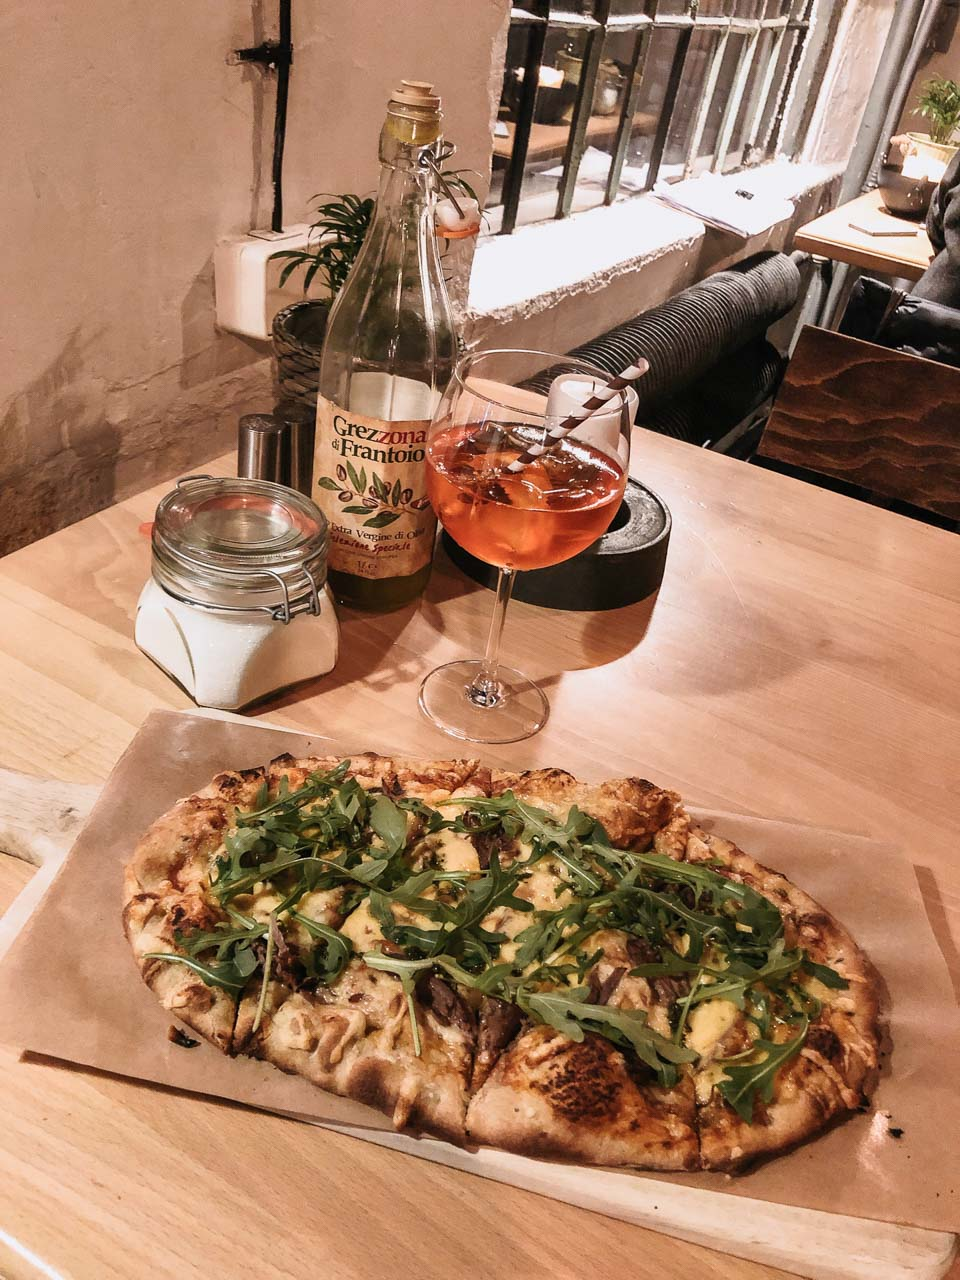 A pide pizza and an Aperol Spritz